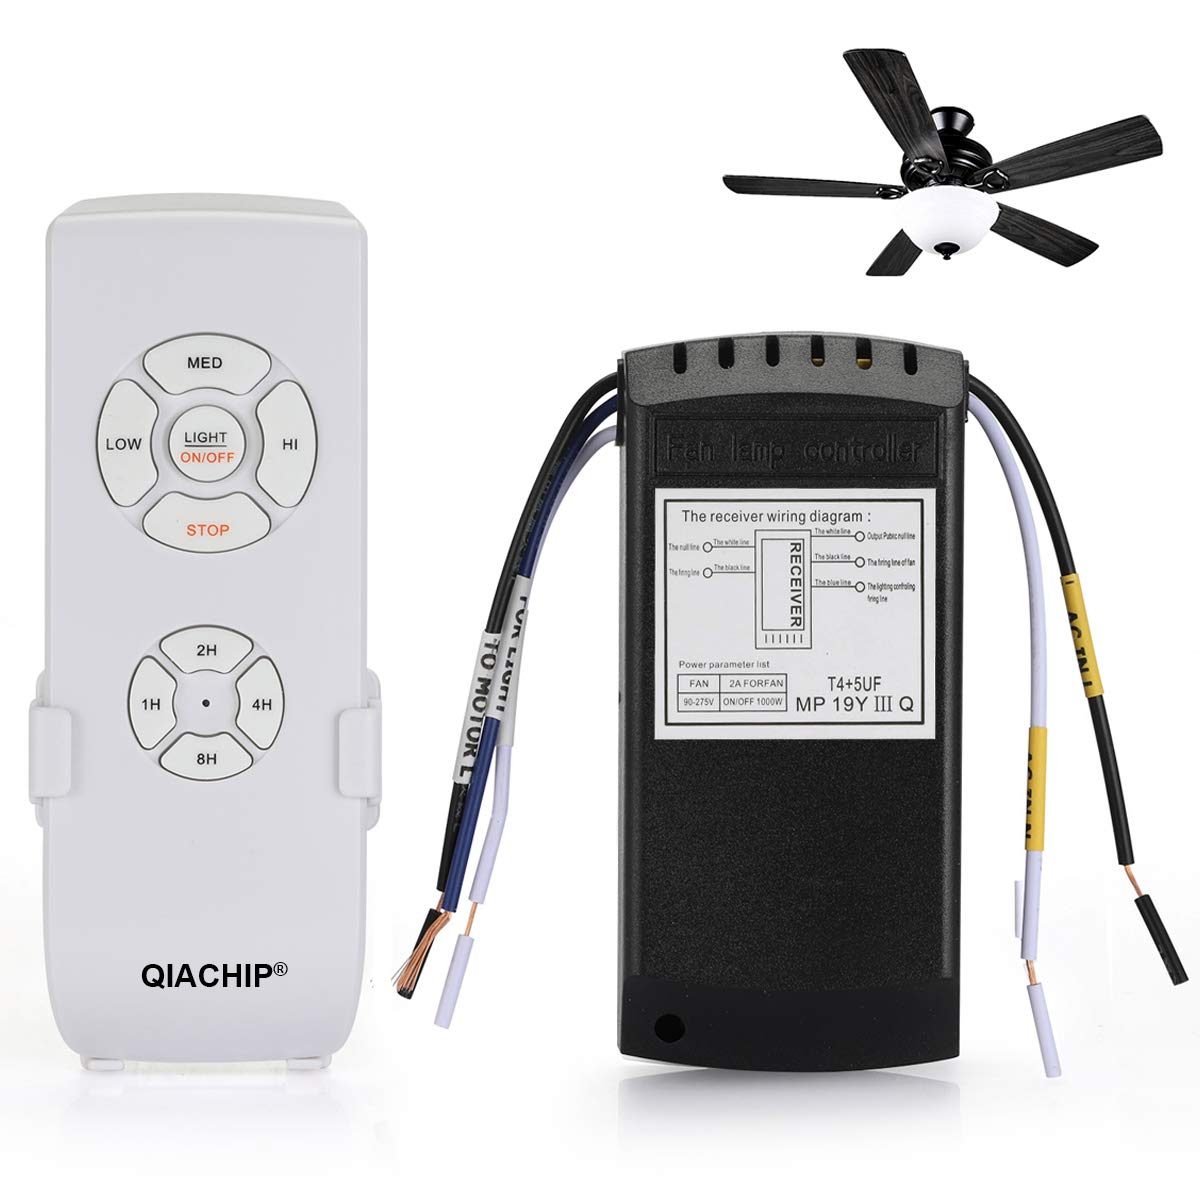 QIACHIP Universal Ceiling Fan and Light Remote Control Kit by QIACHIP